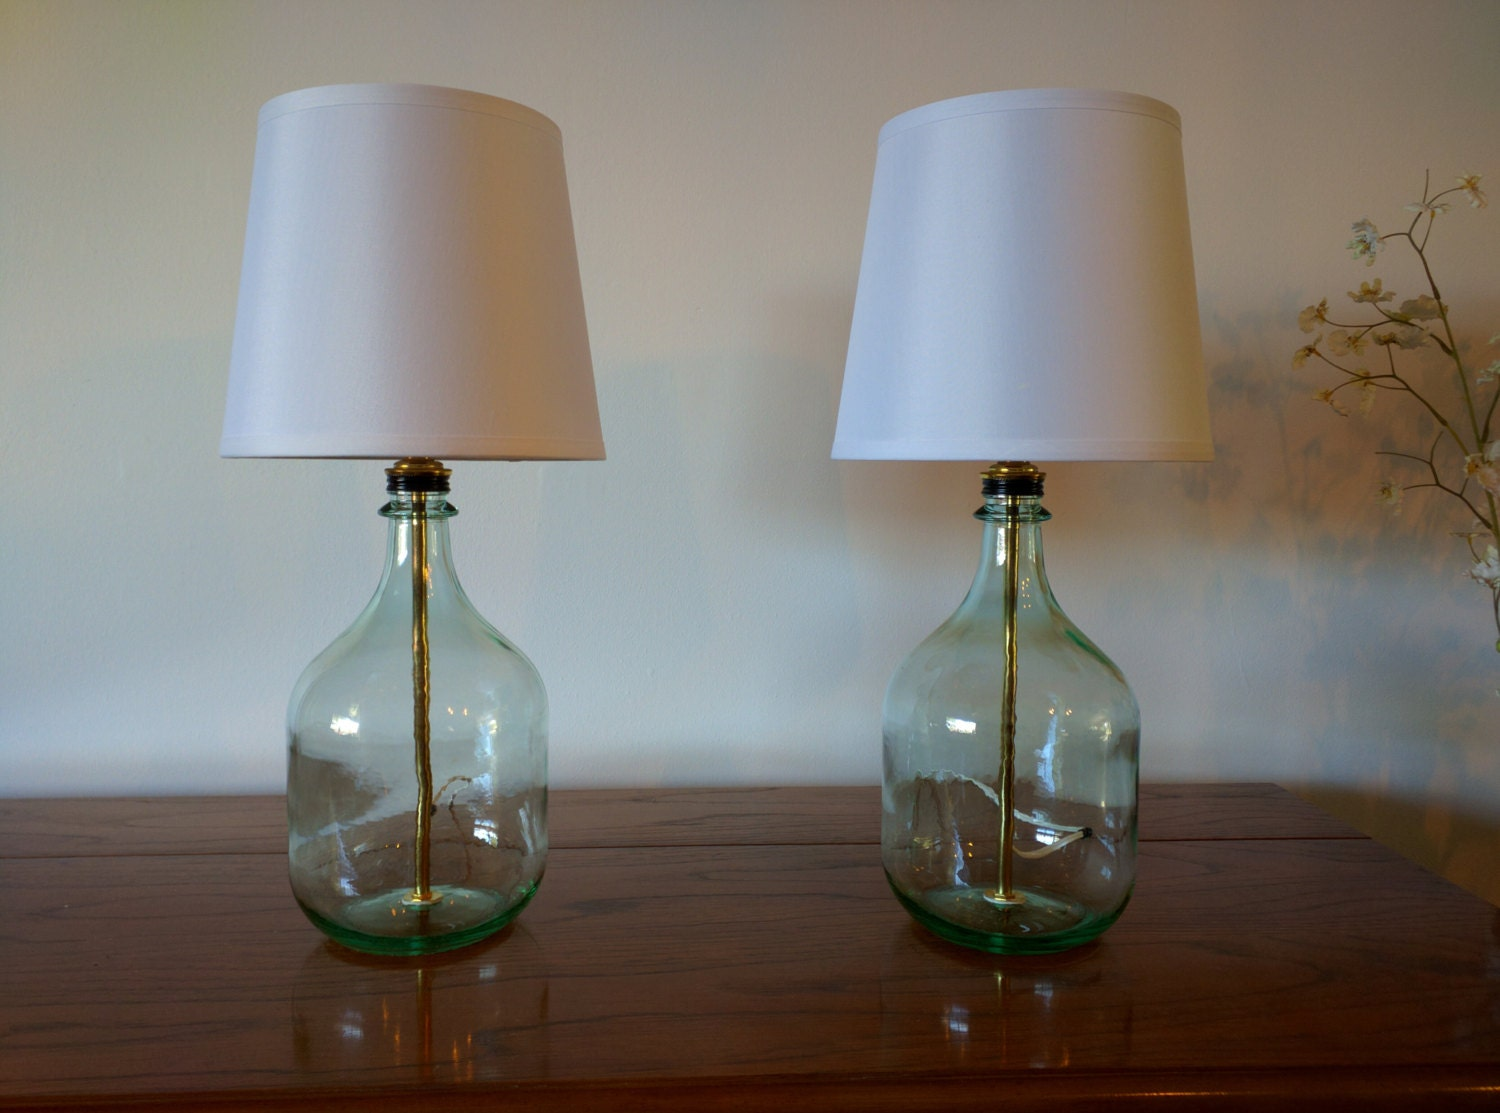 Table lamp bedside lamps small table lampsbottle lamp zoom audiocablefo